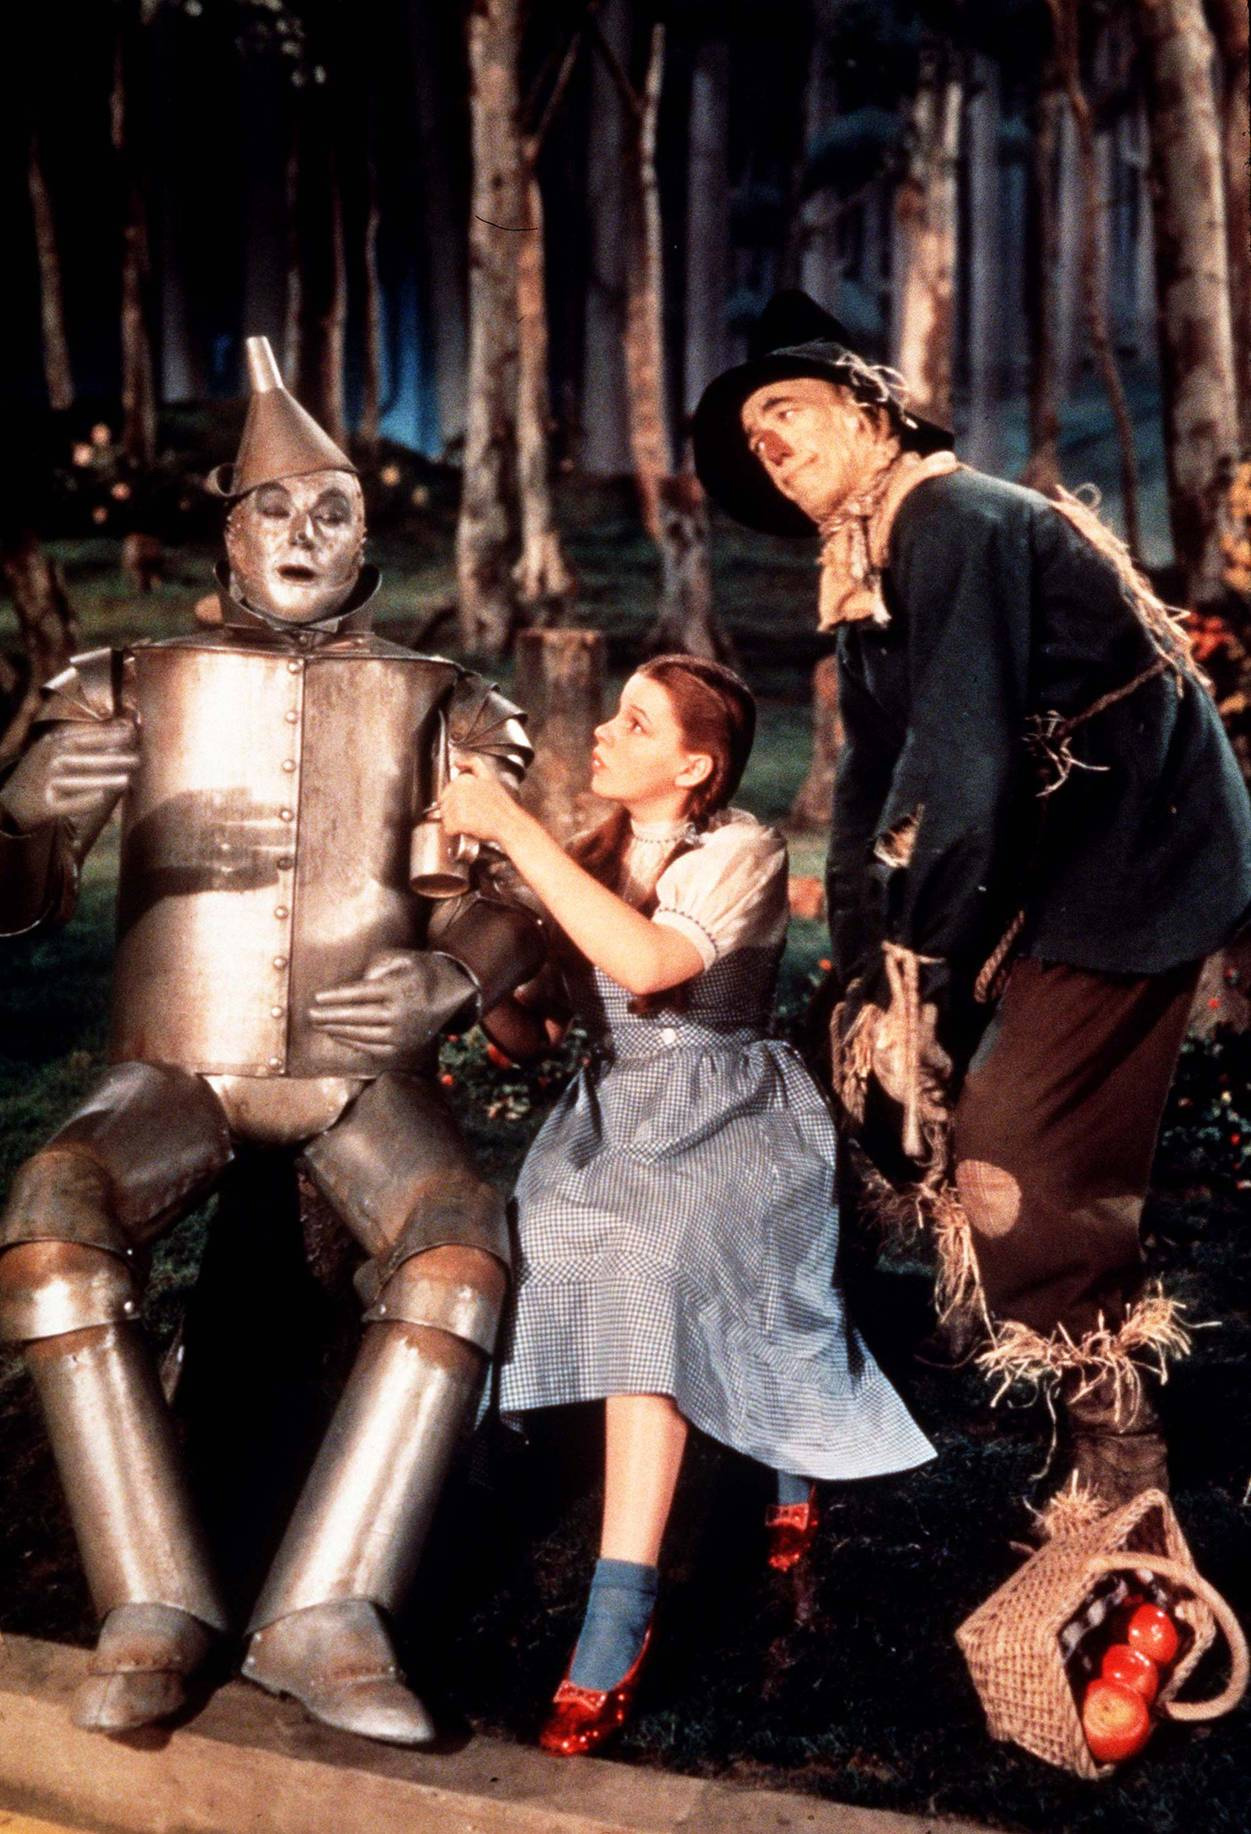 The wizard of oz alternate movie ending 9